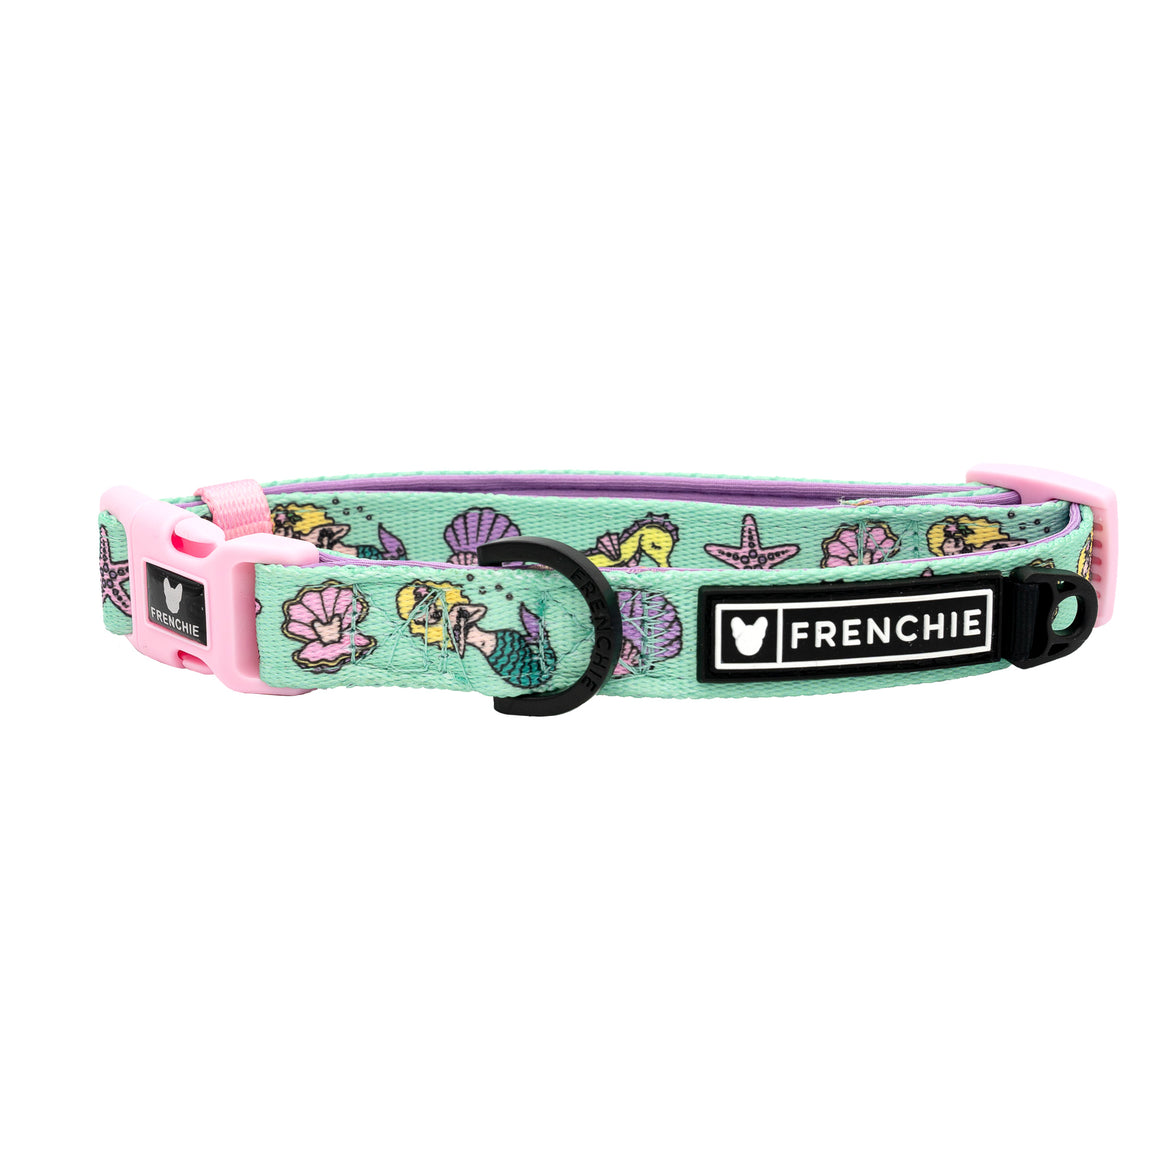 Frenchie Comfort Collar - Under The Sea